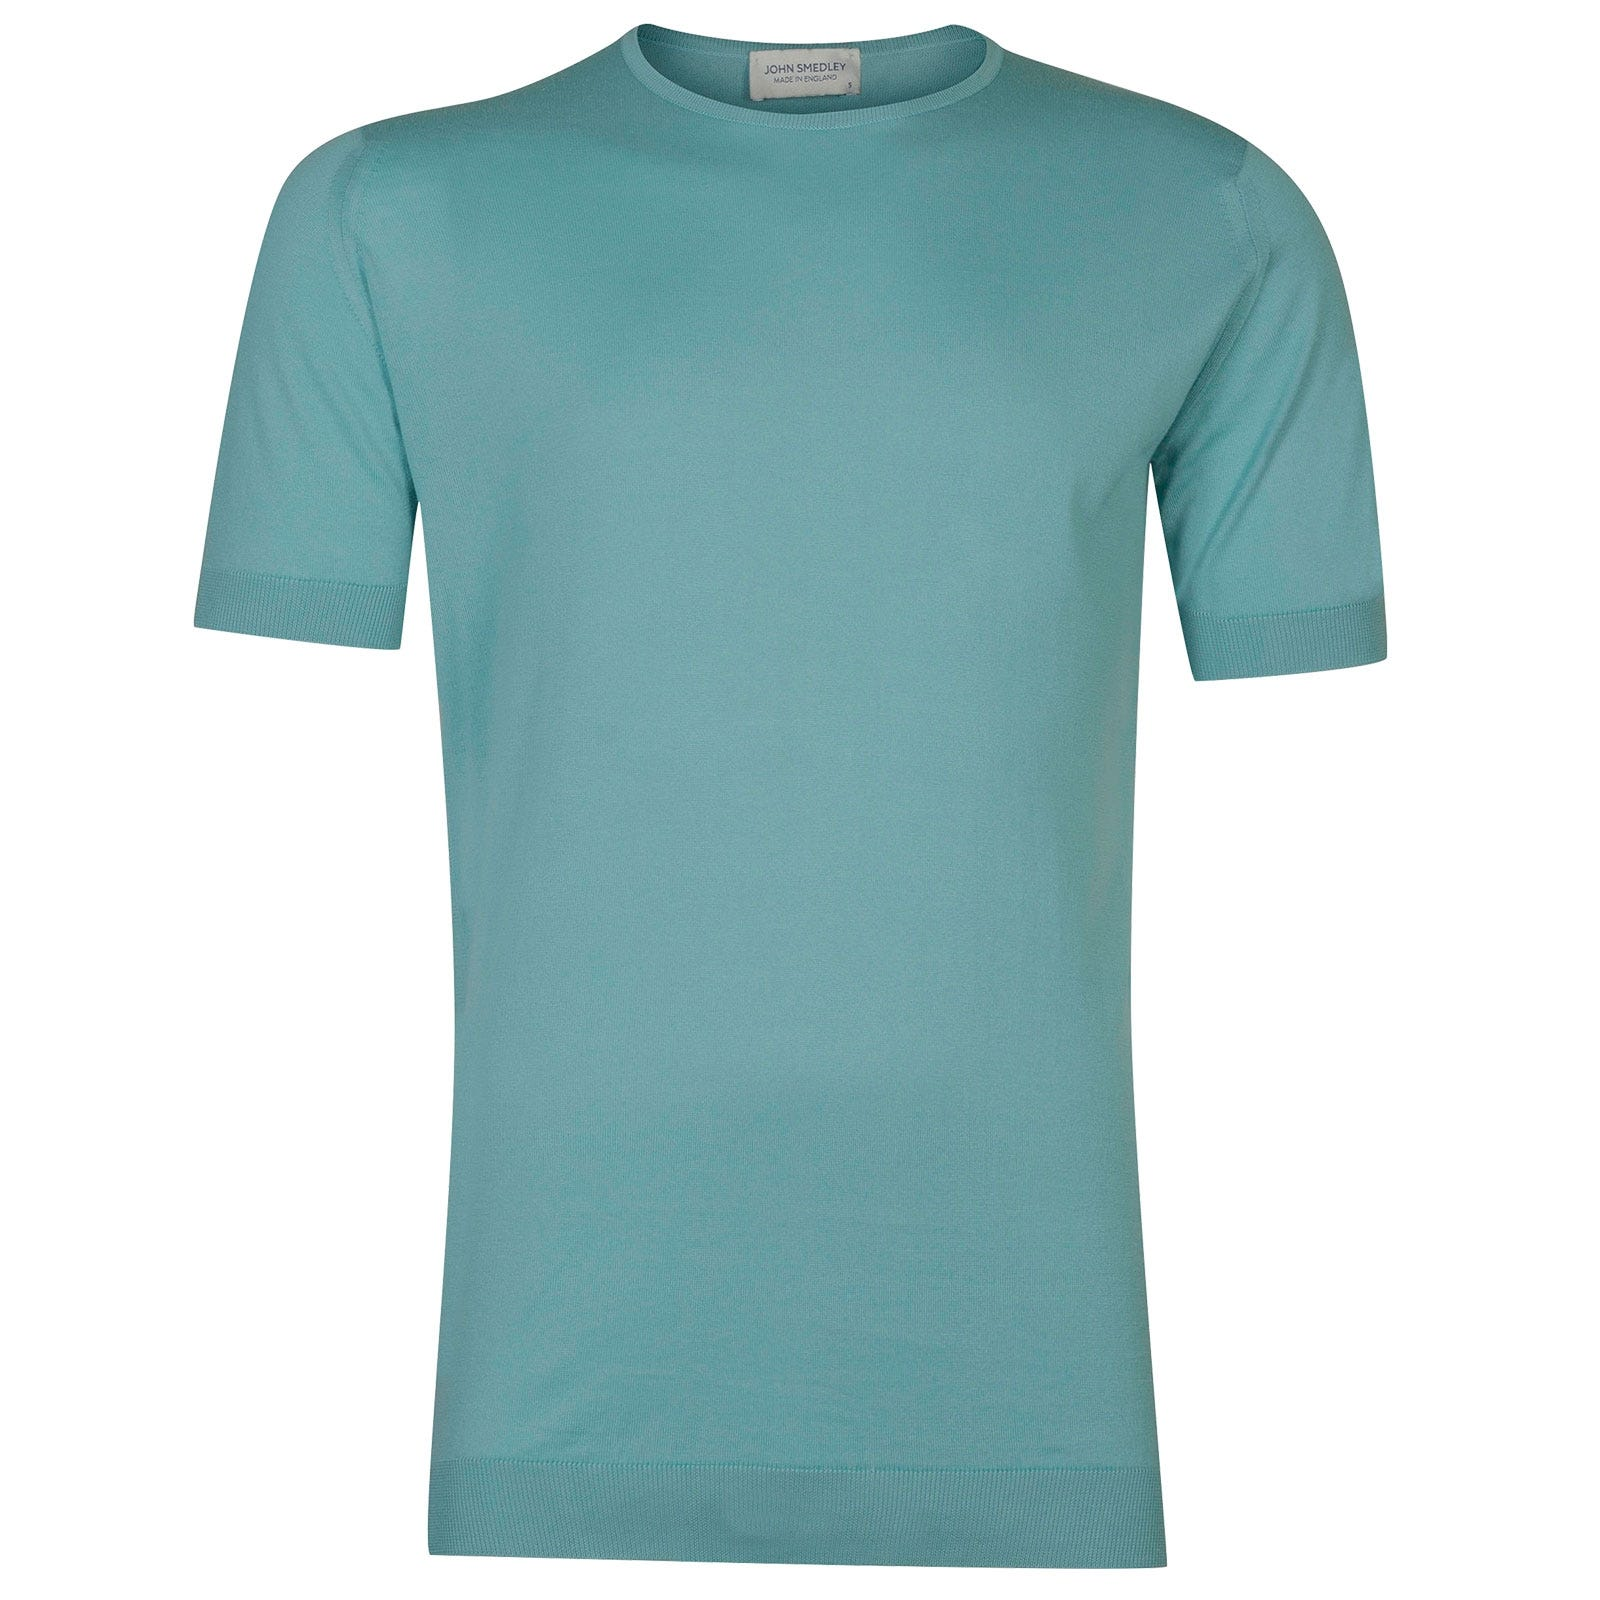 John Smedley Belden in Empyrean Blue T-Shirt-XXL